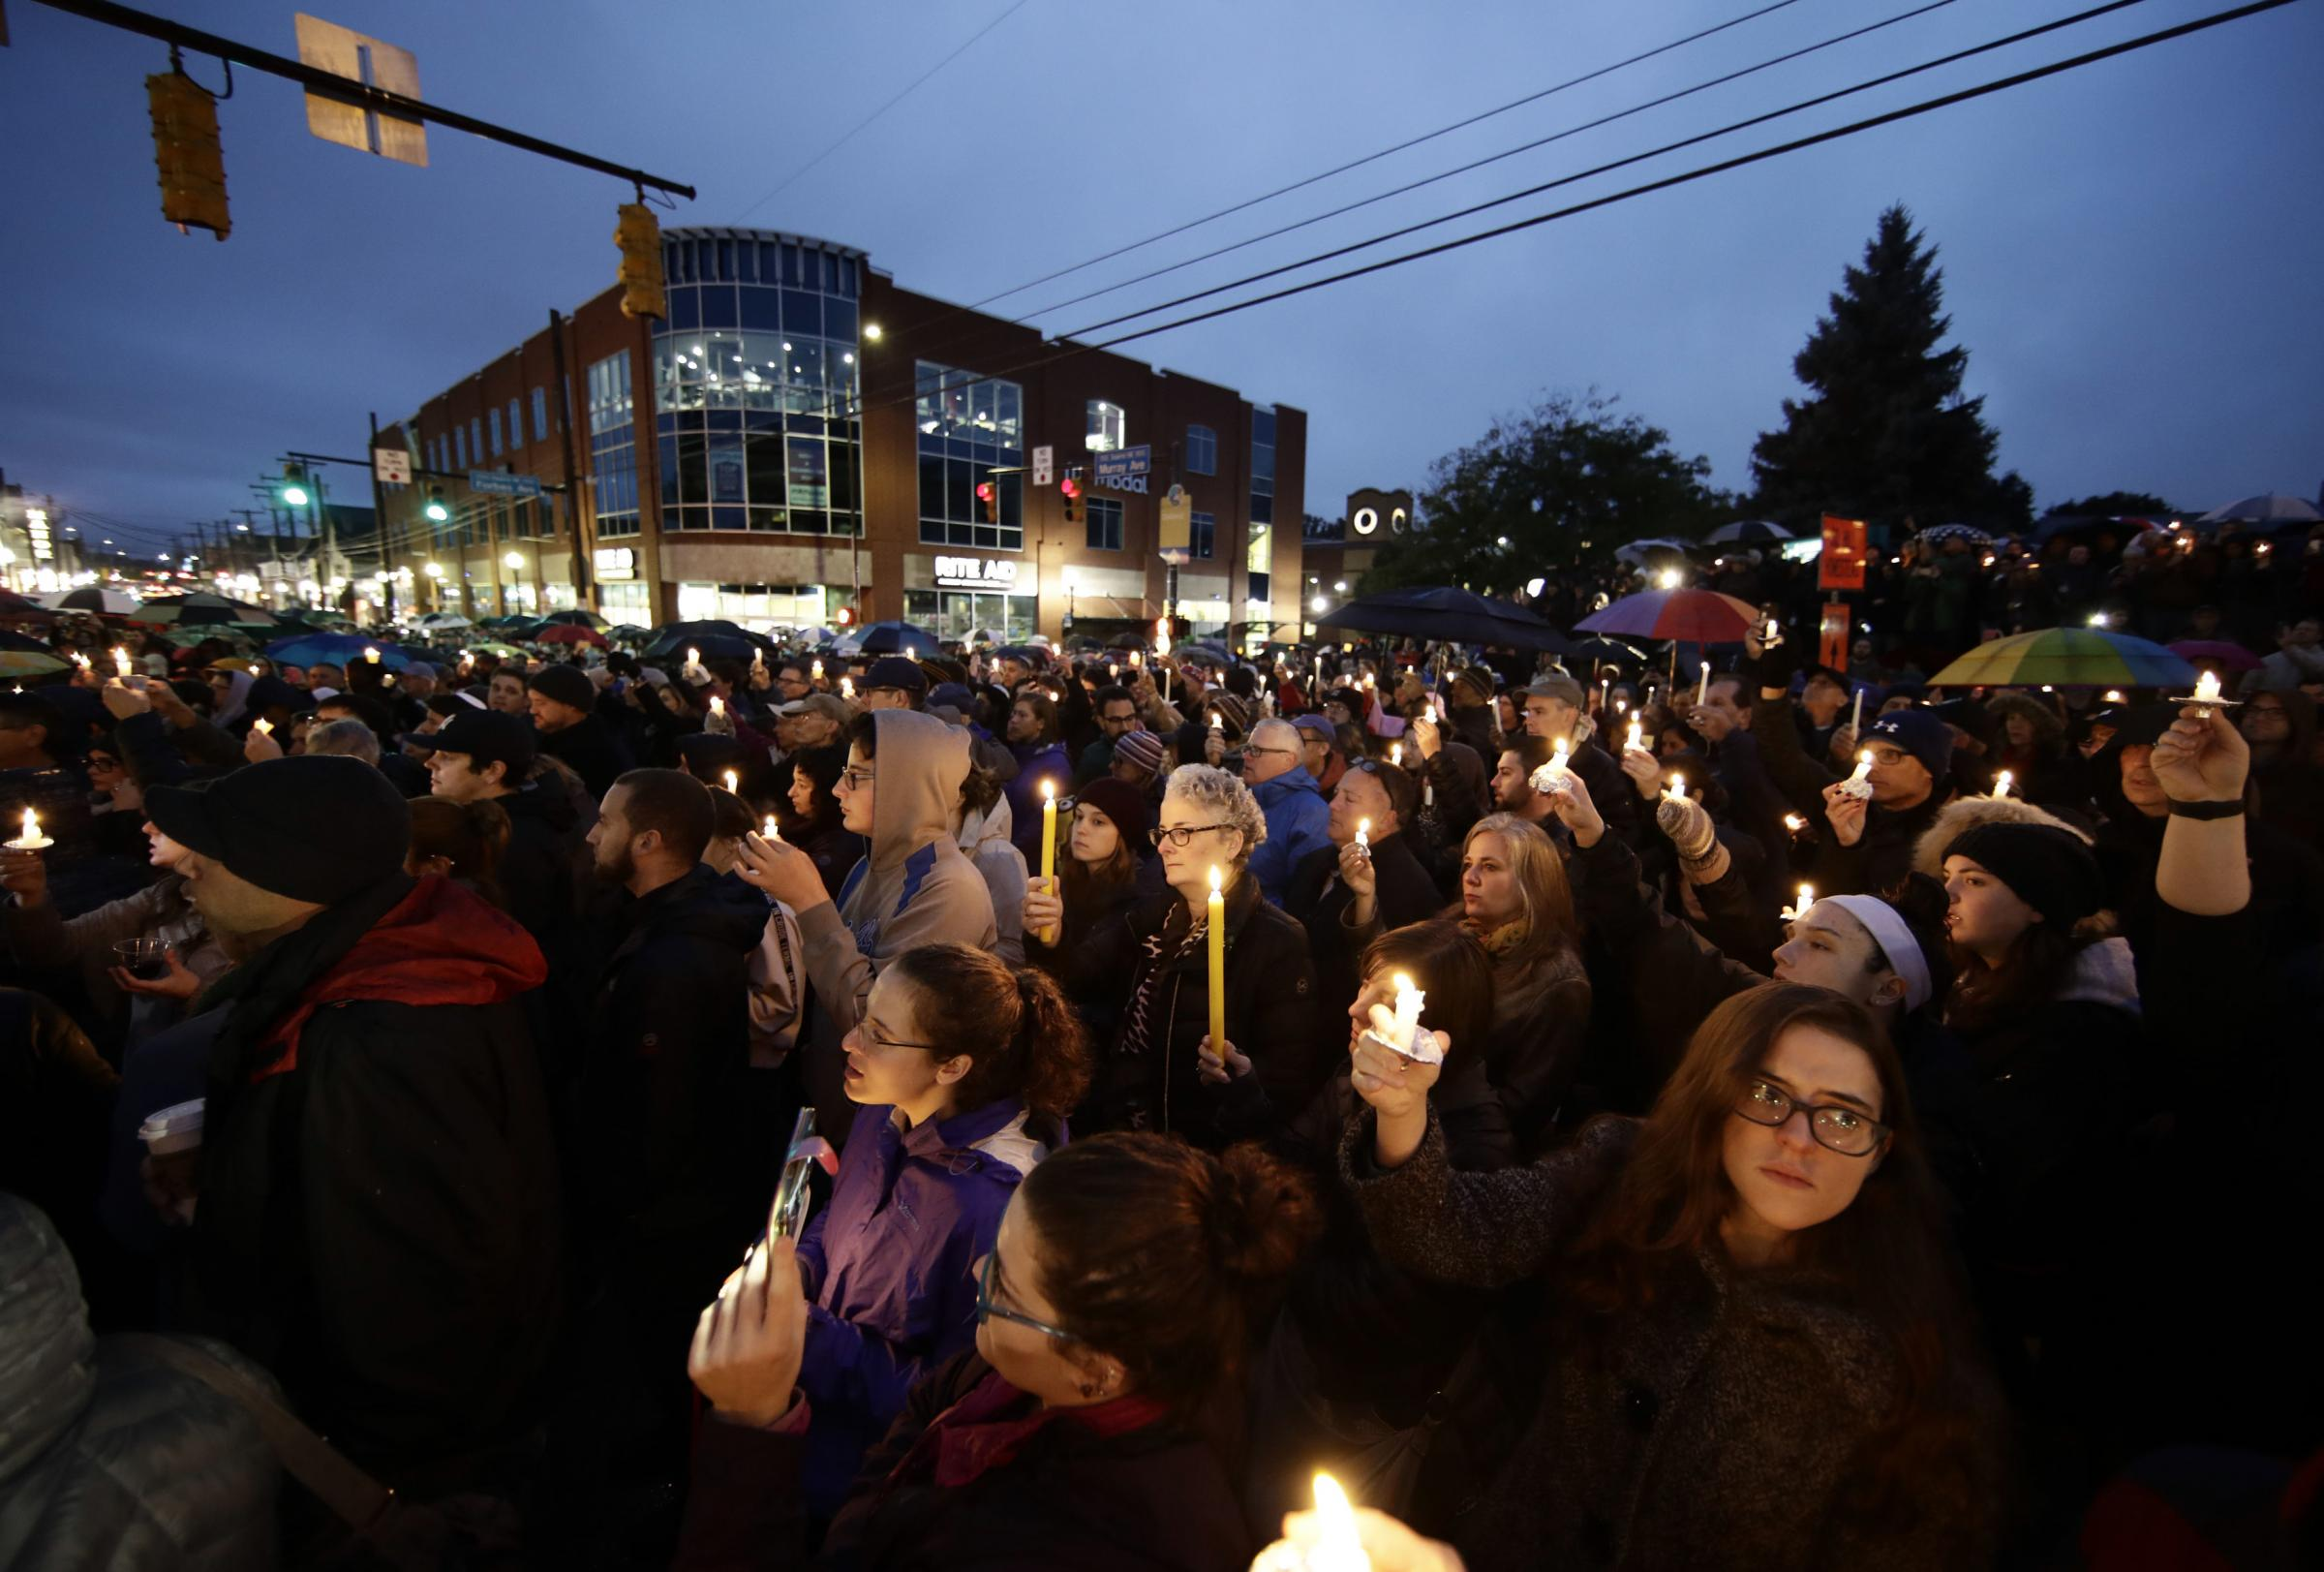 A crowd gathered to light candles in memory of victims of the Pittsburgh shooting